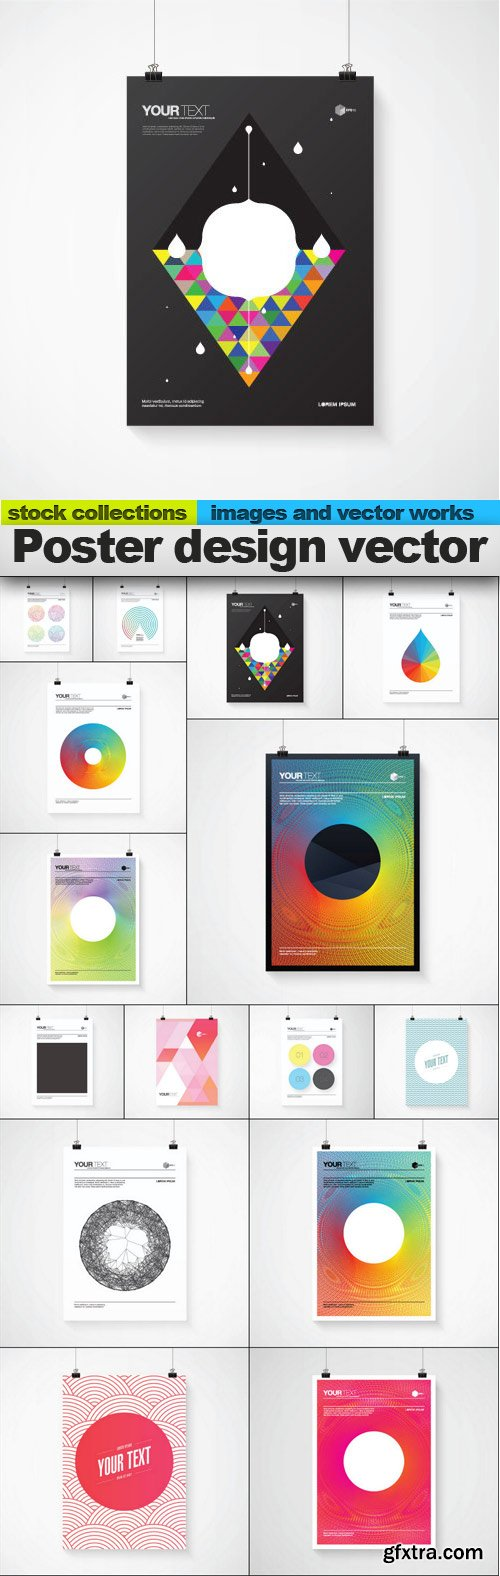 Poster design vector, 15 x EPS